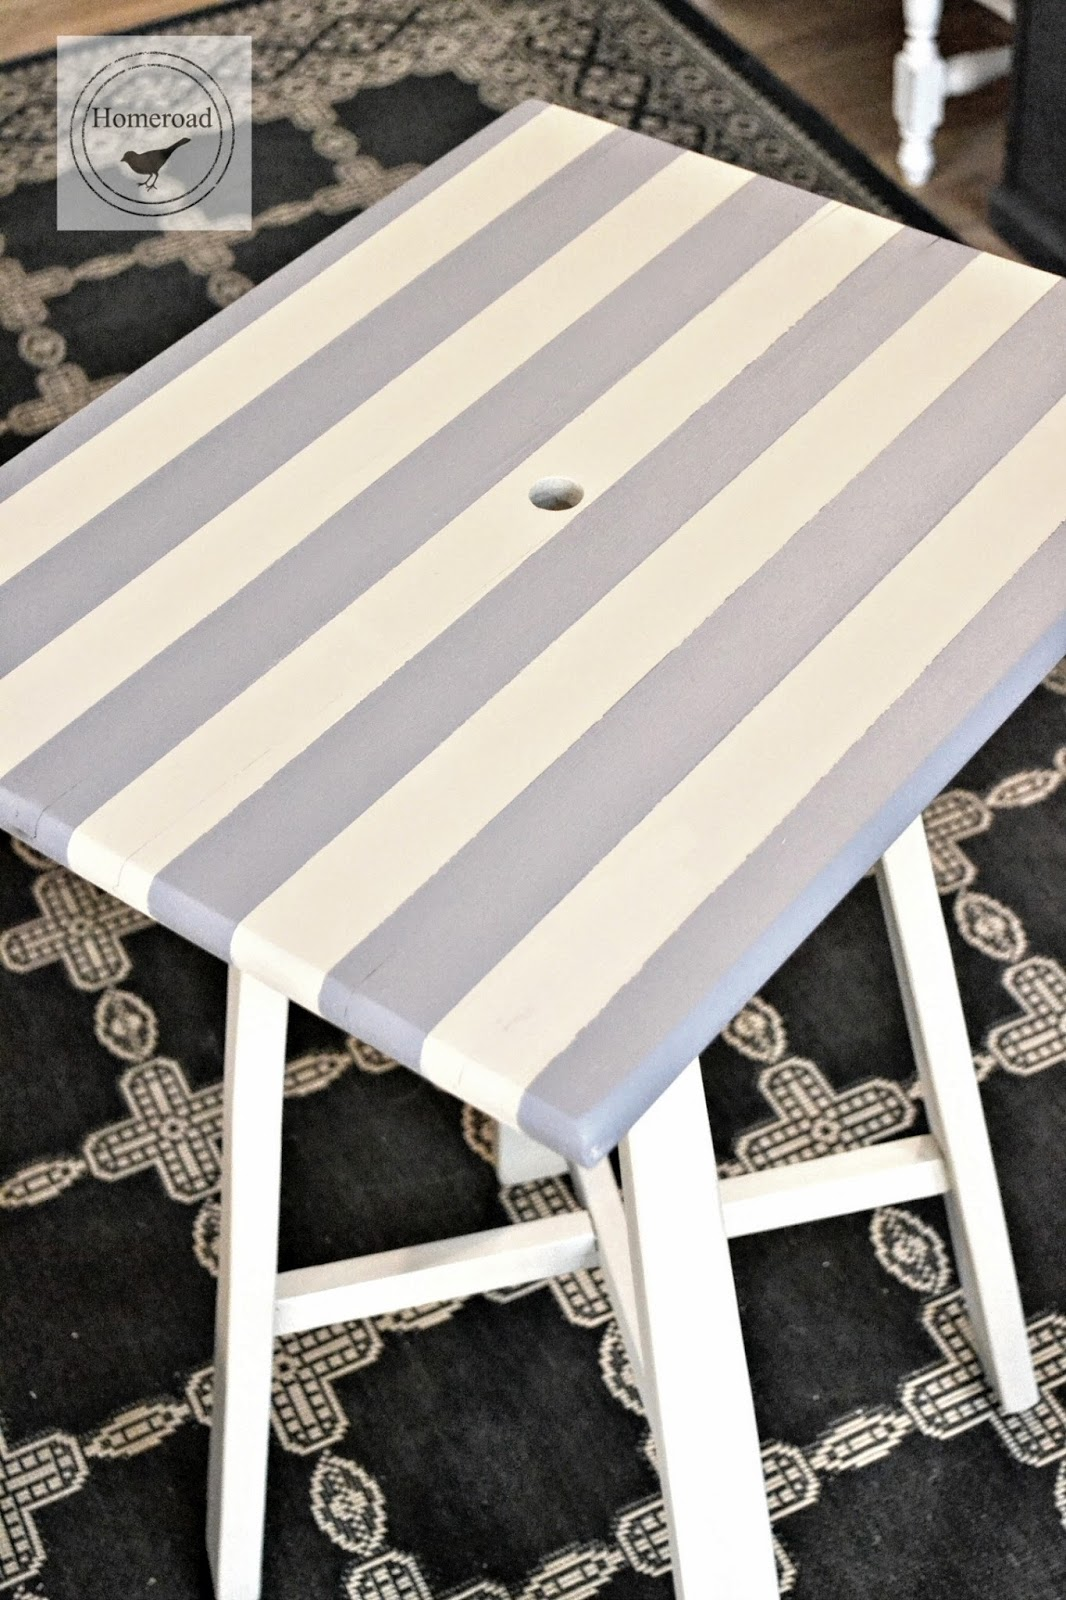 saving a small striped table with a hole www.homeroad.net